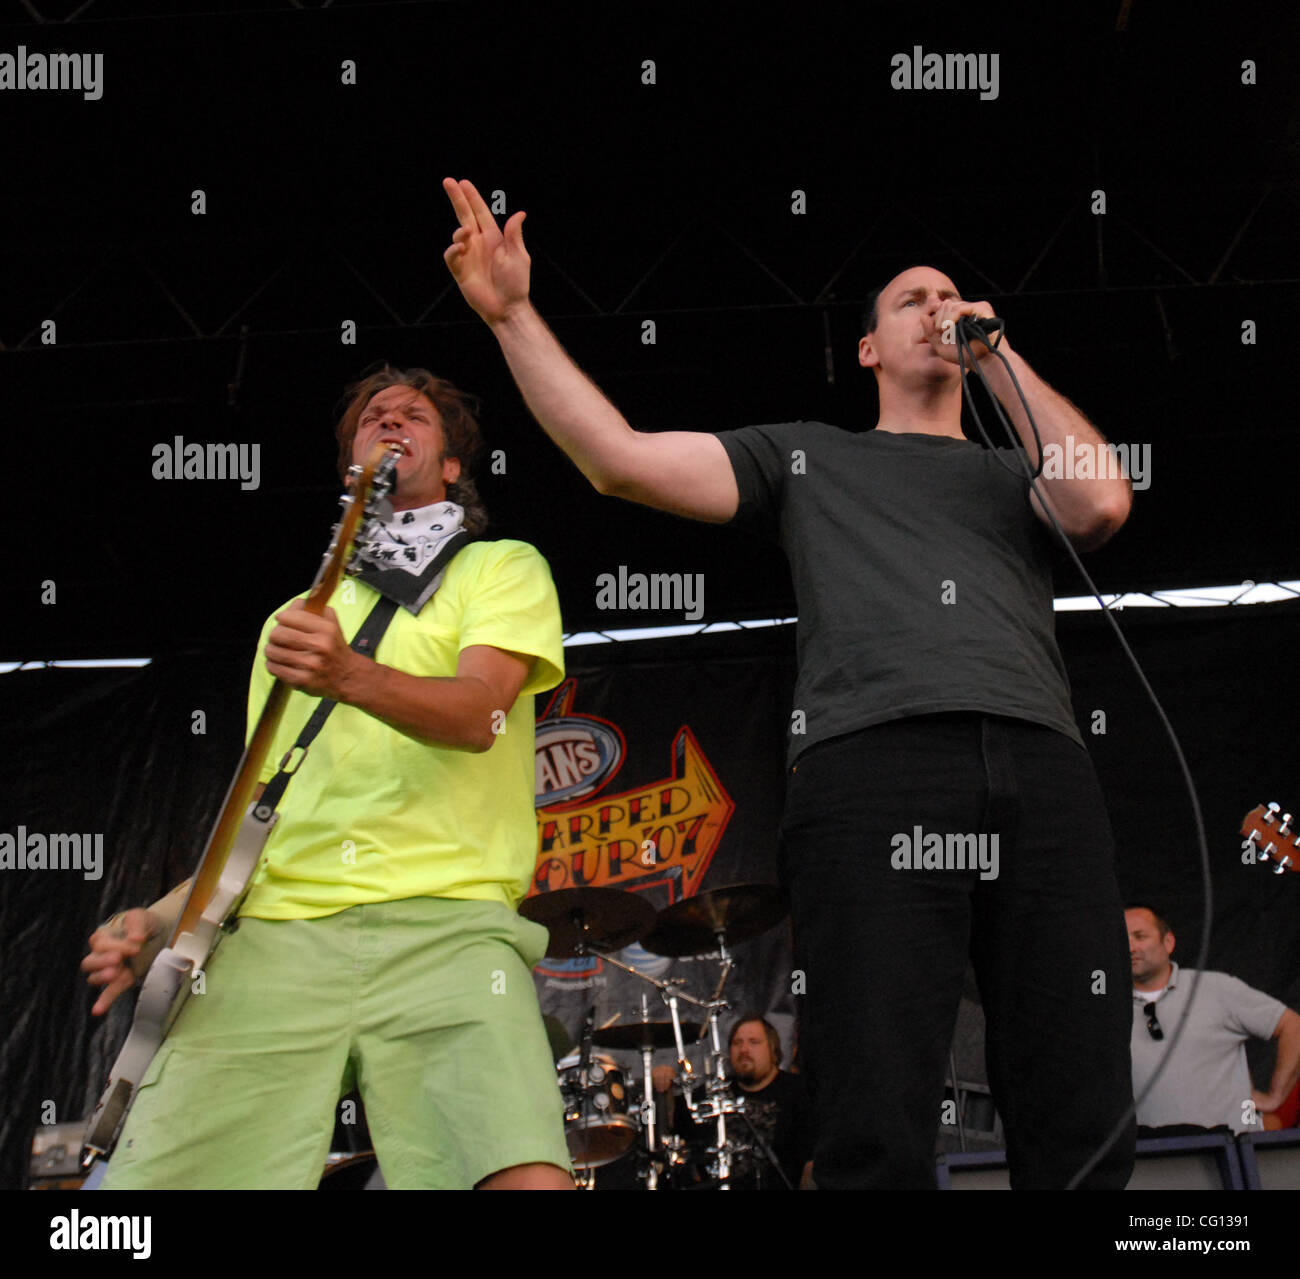 Jul. 23, 2007; Charlotte, NC USA;  Bass Guitarist JAY BENTLEY and Singer GREG GRAFFIN of the band BAD RELIGION performs - Stock Image